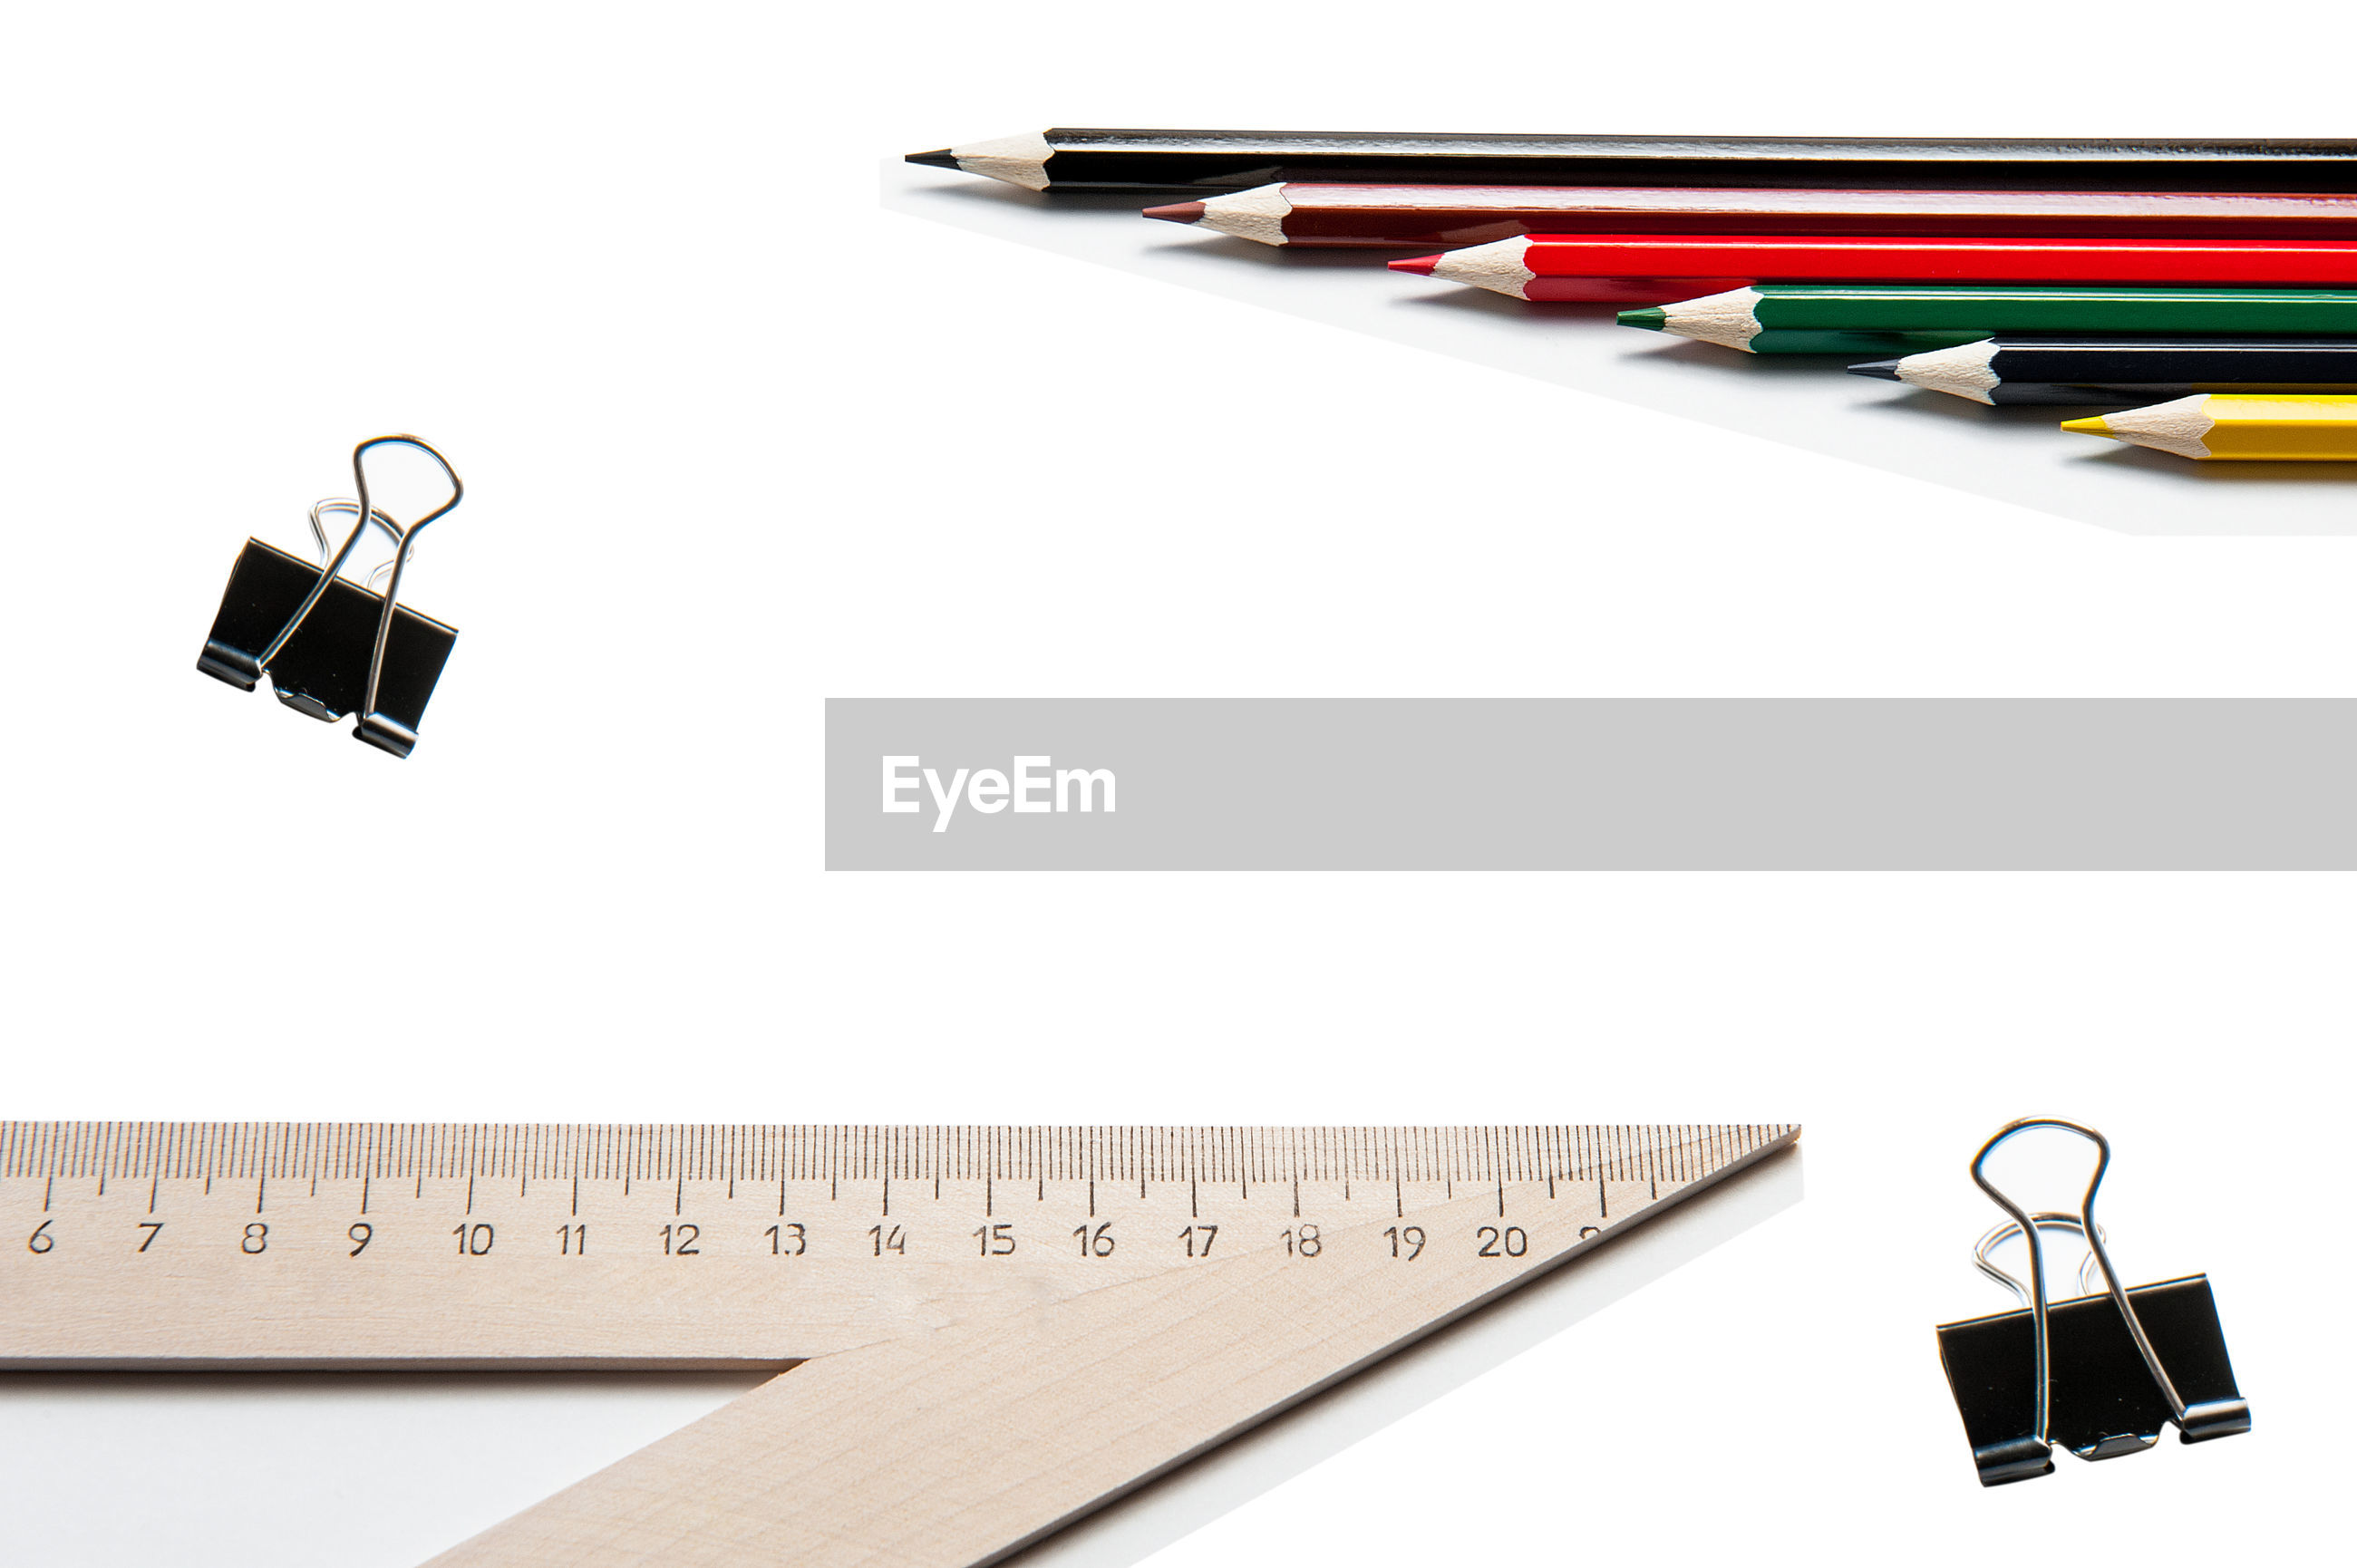 High angle view of colored pencils by paper clips and ruler against white background